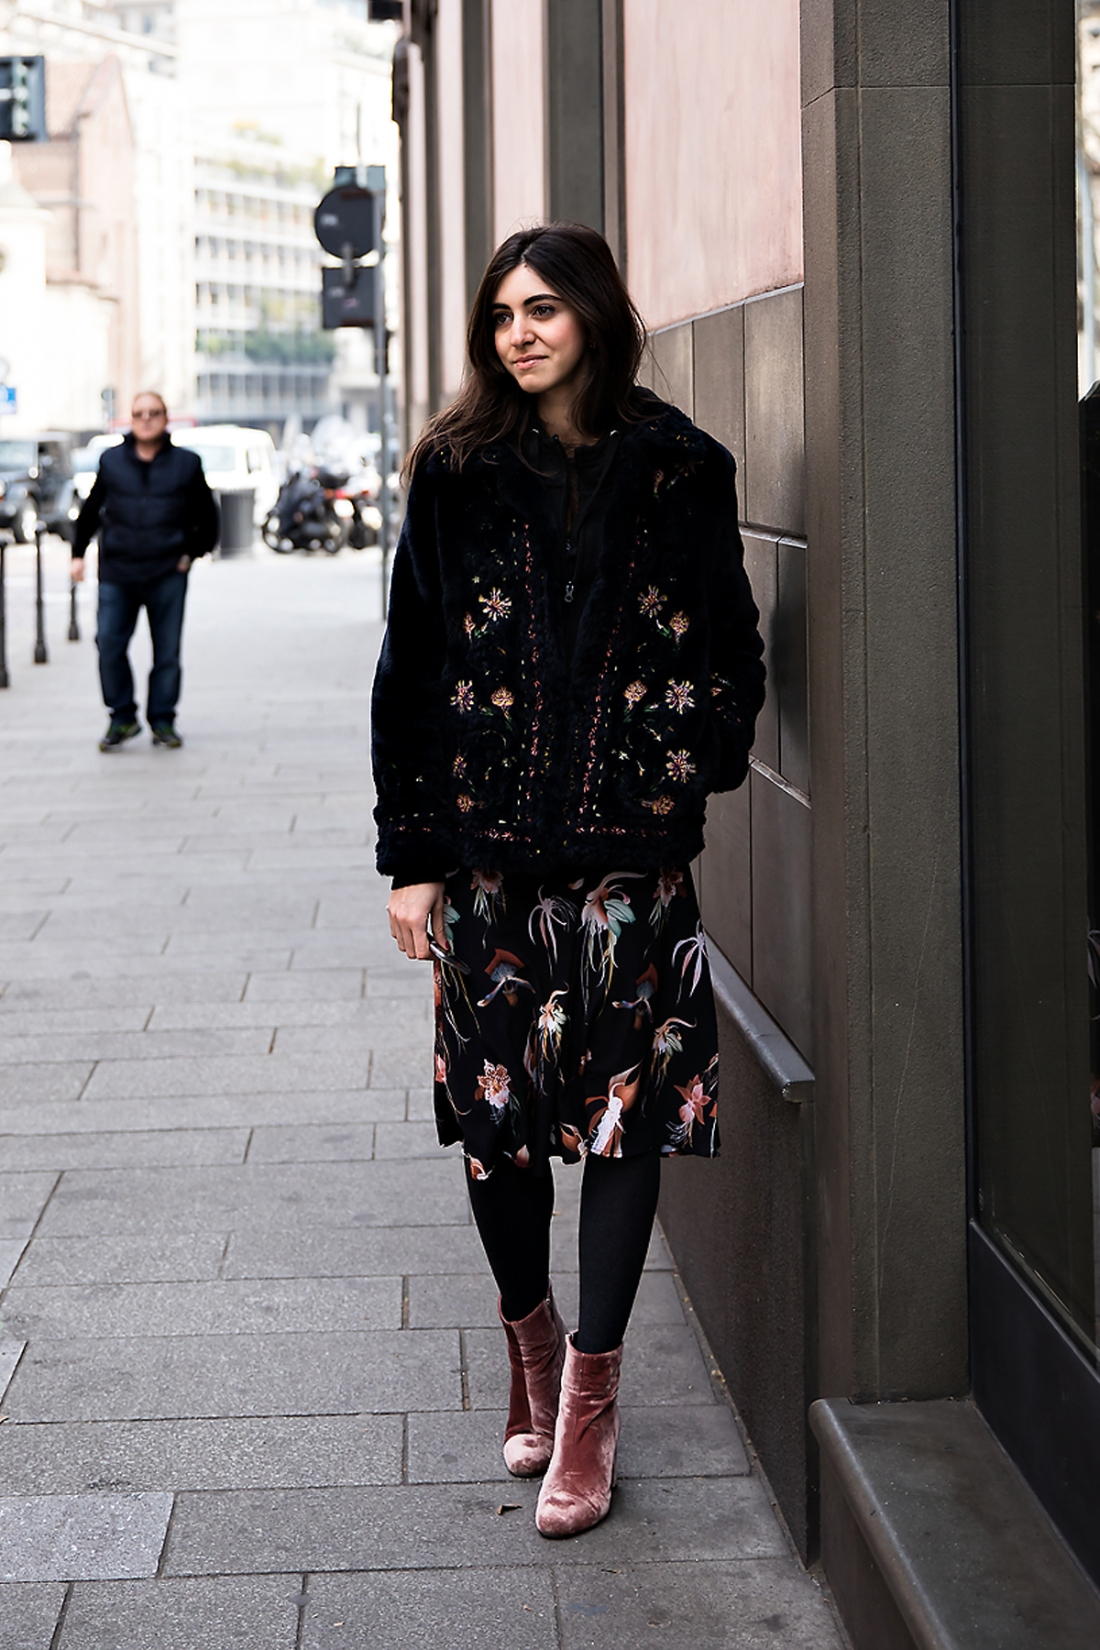 Lucia, Street Fashion 2017 in Milano.jpg